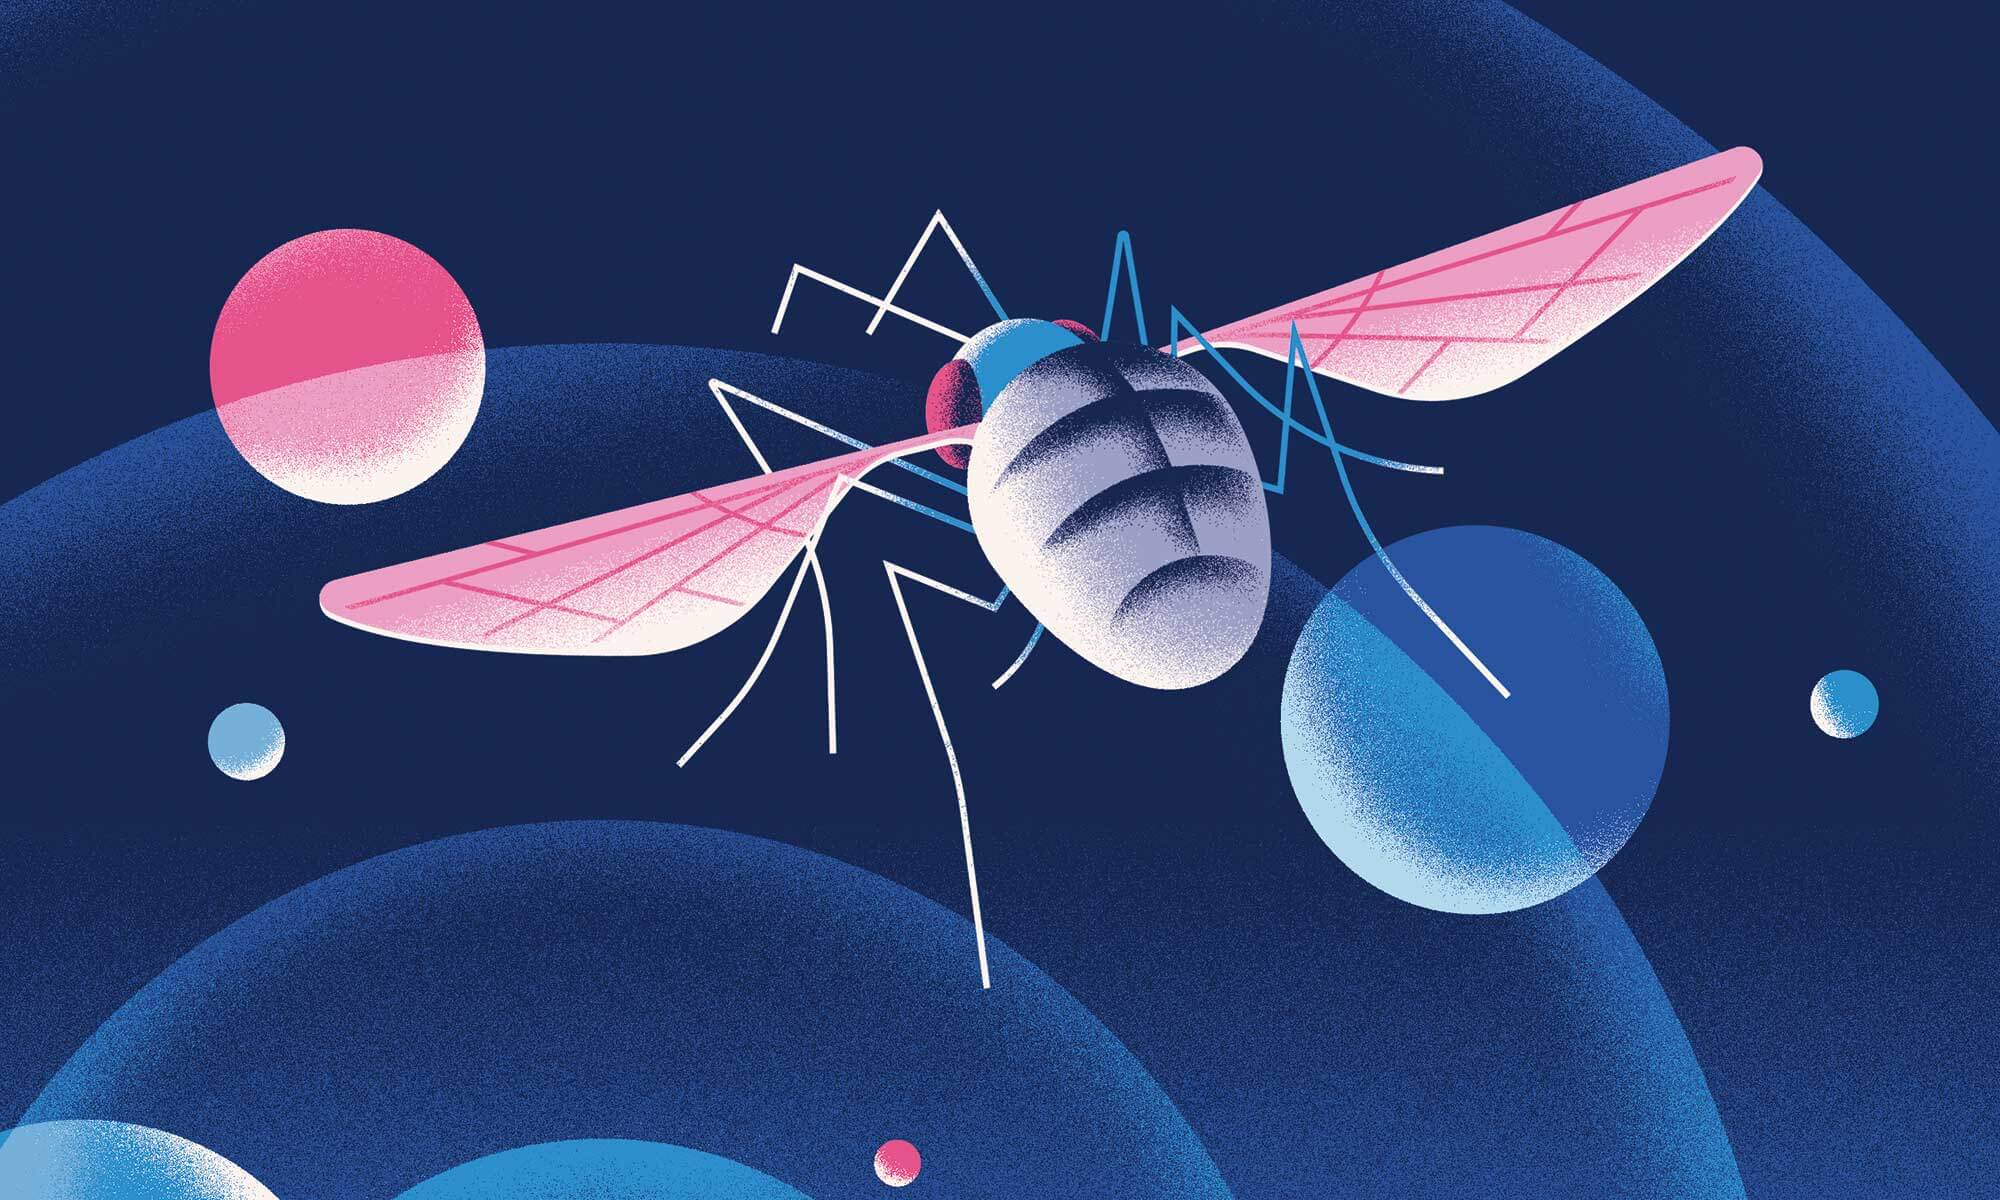 Scientists have measured the minds of fruit flies. But why?